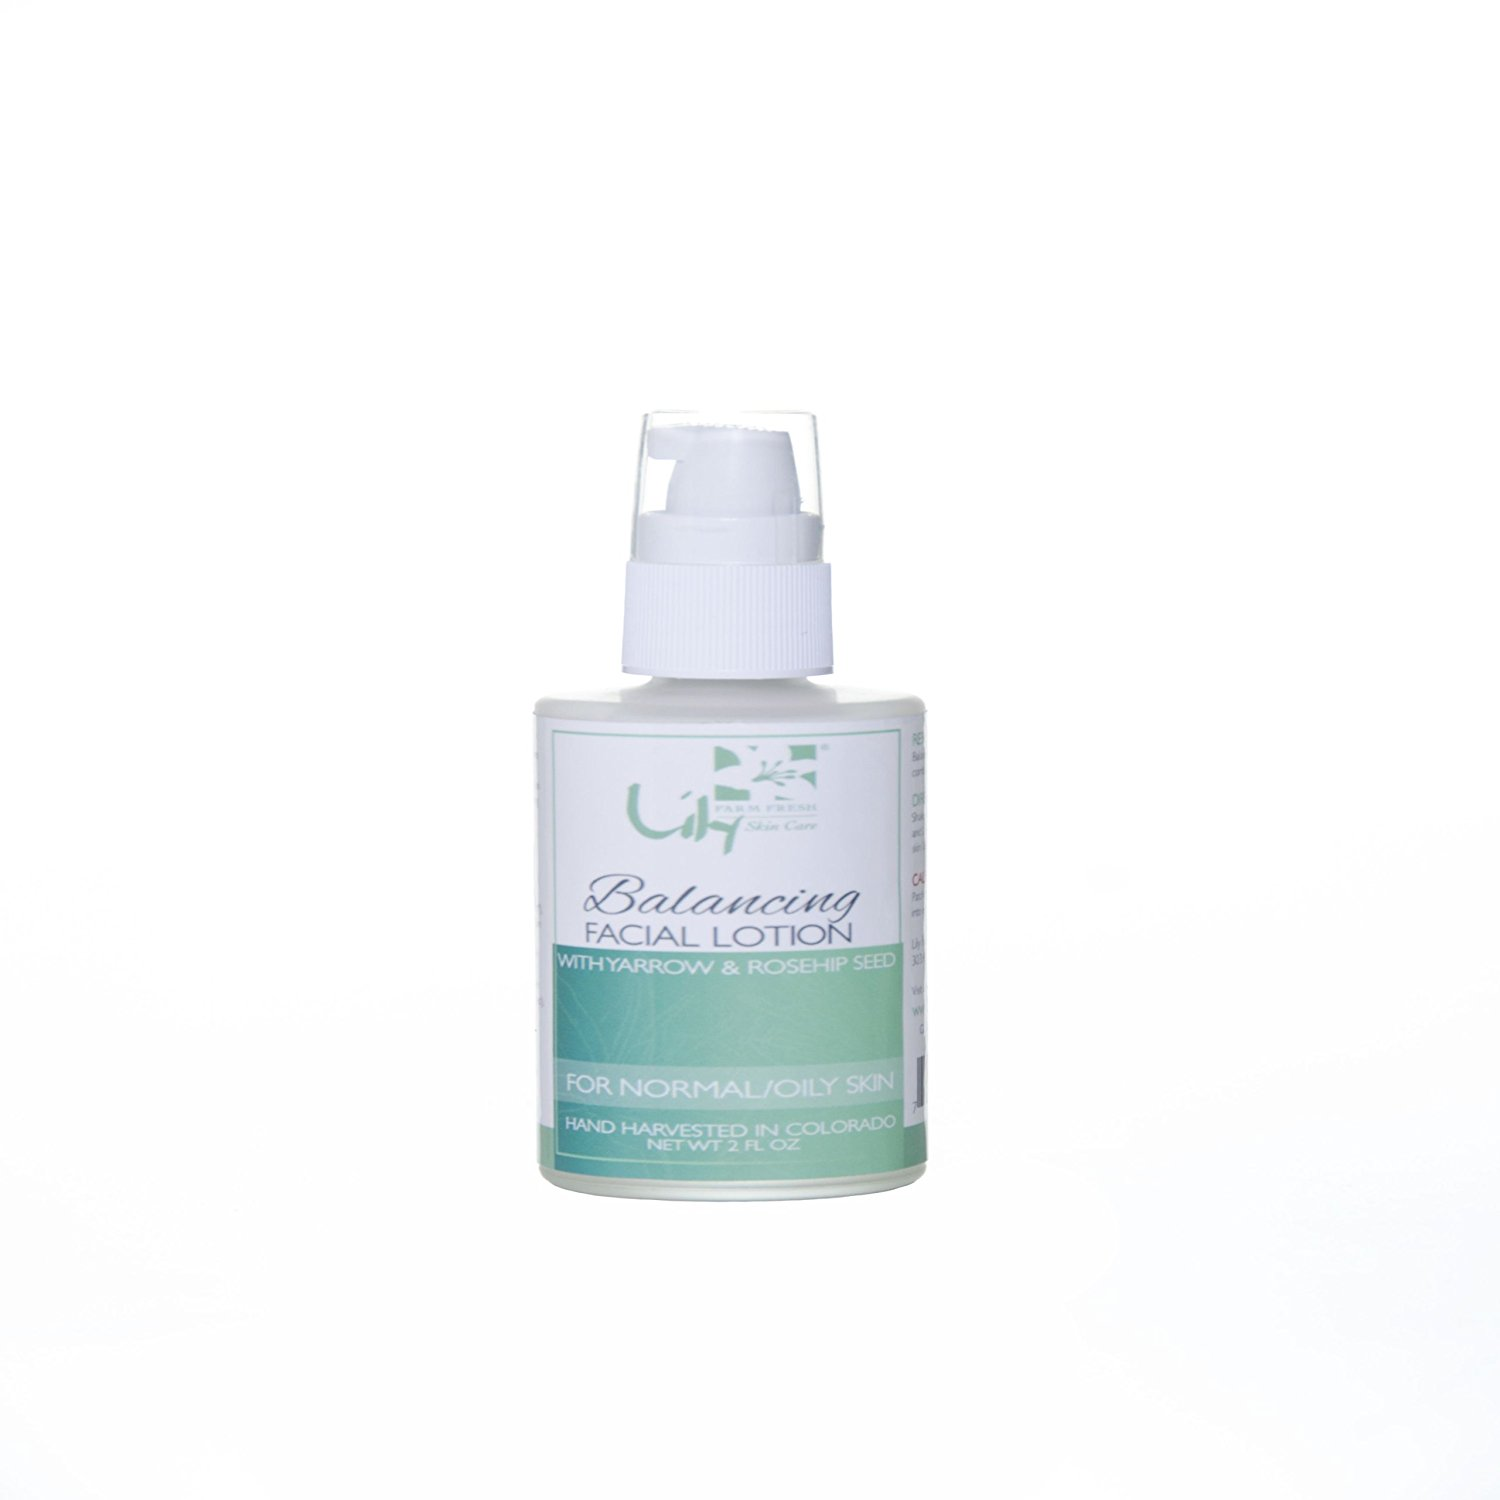 Lily Organics Facial Lotion Balancing Wrinkle Treatment for Oily to Normal Skin